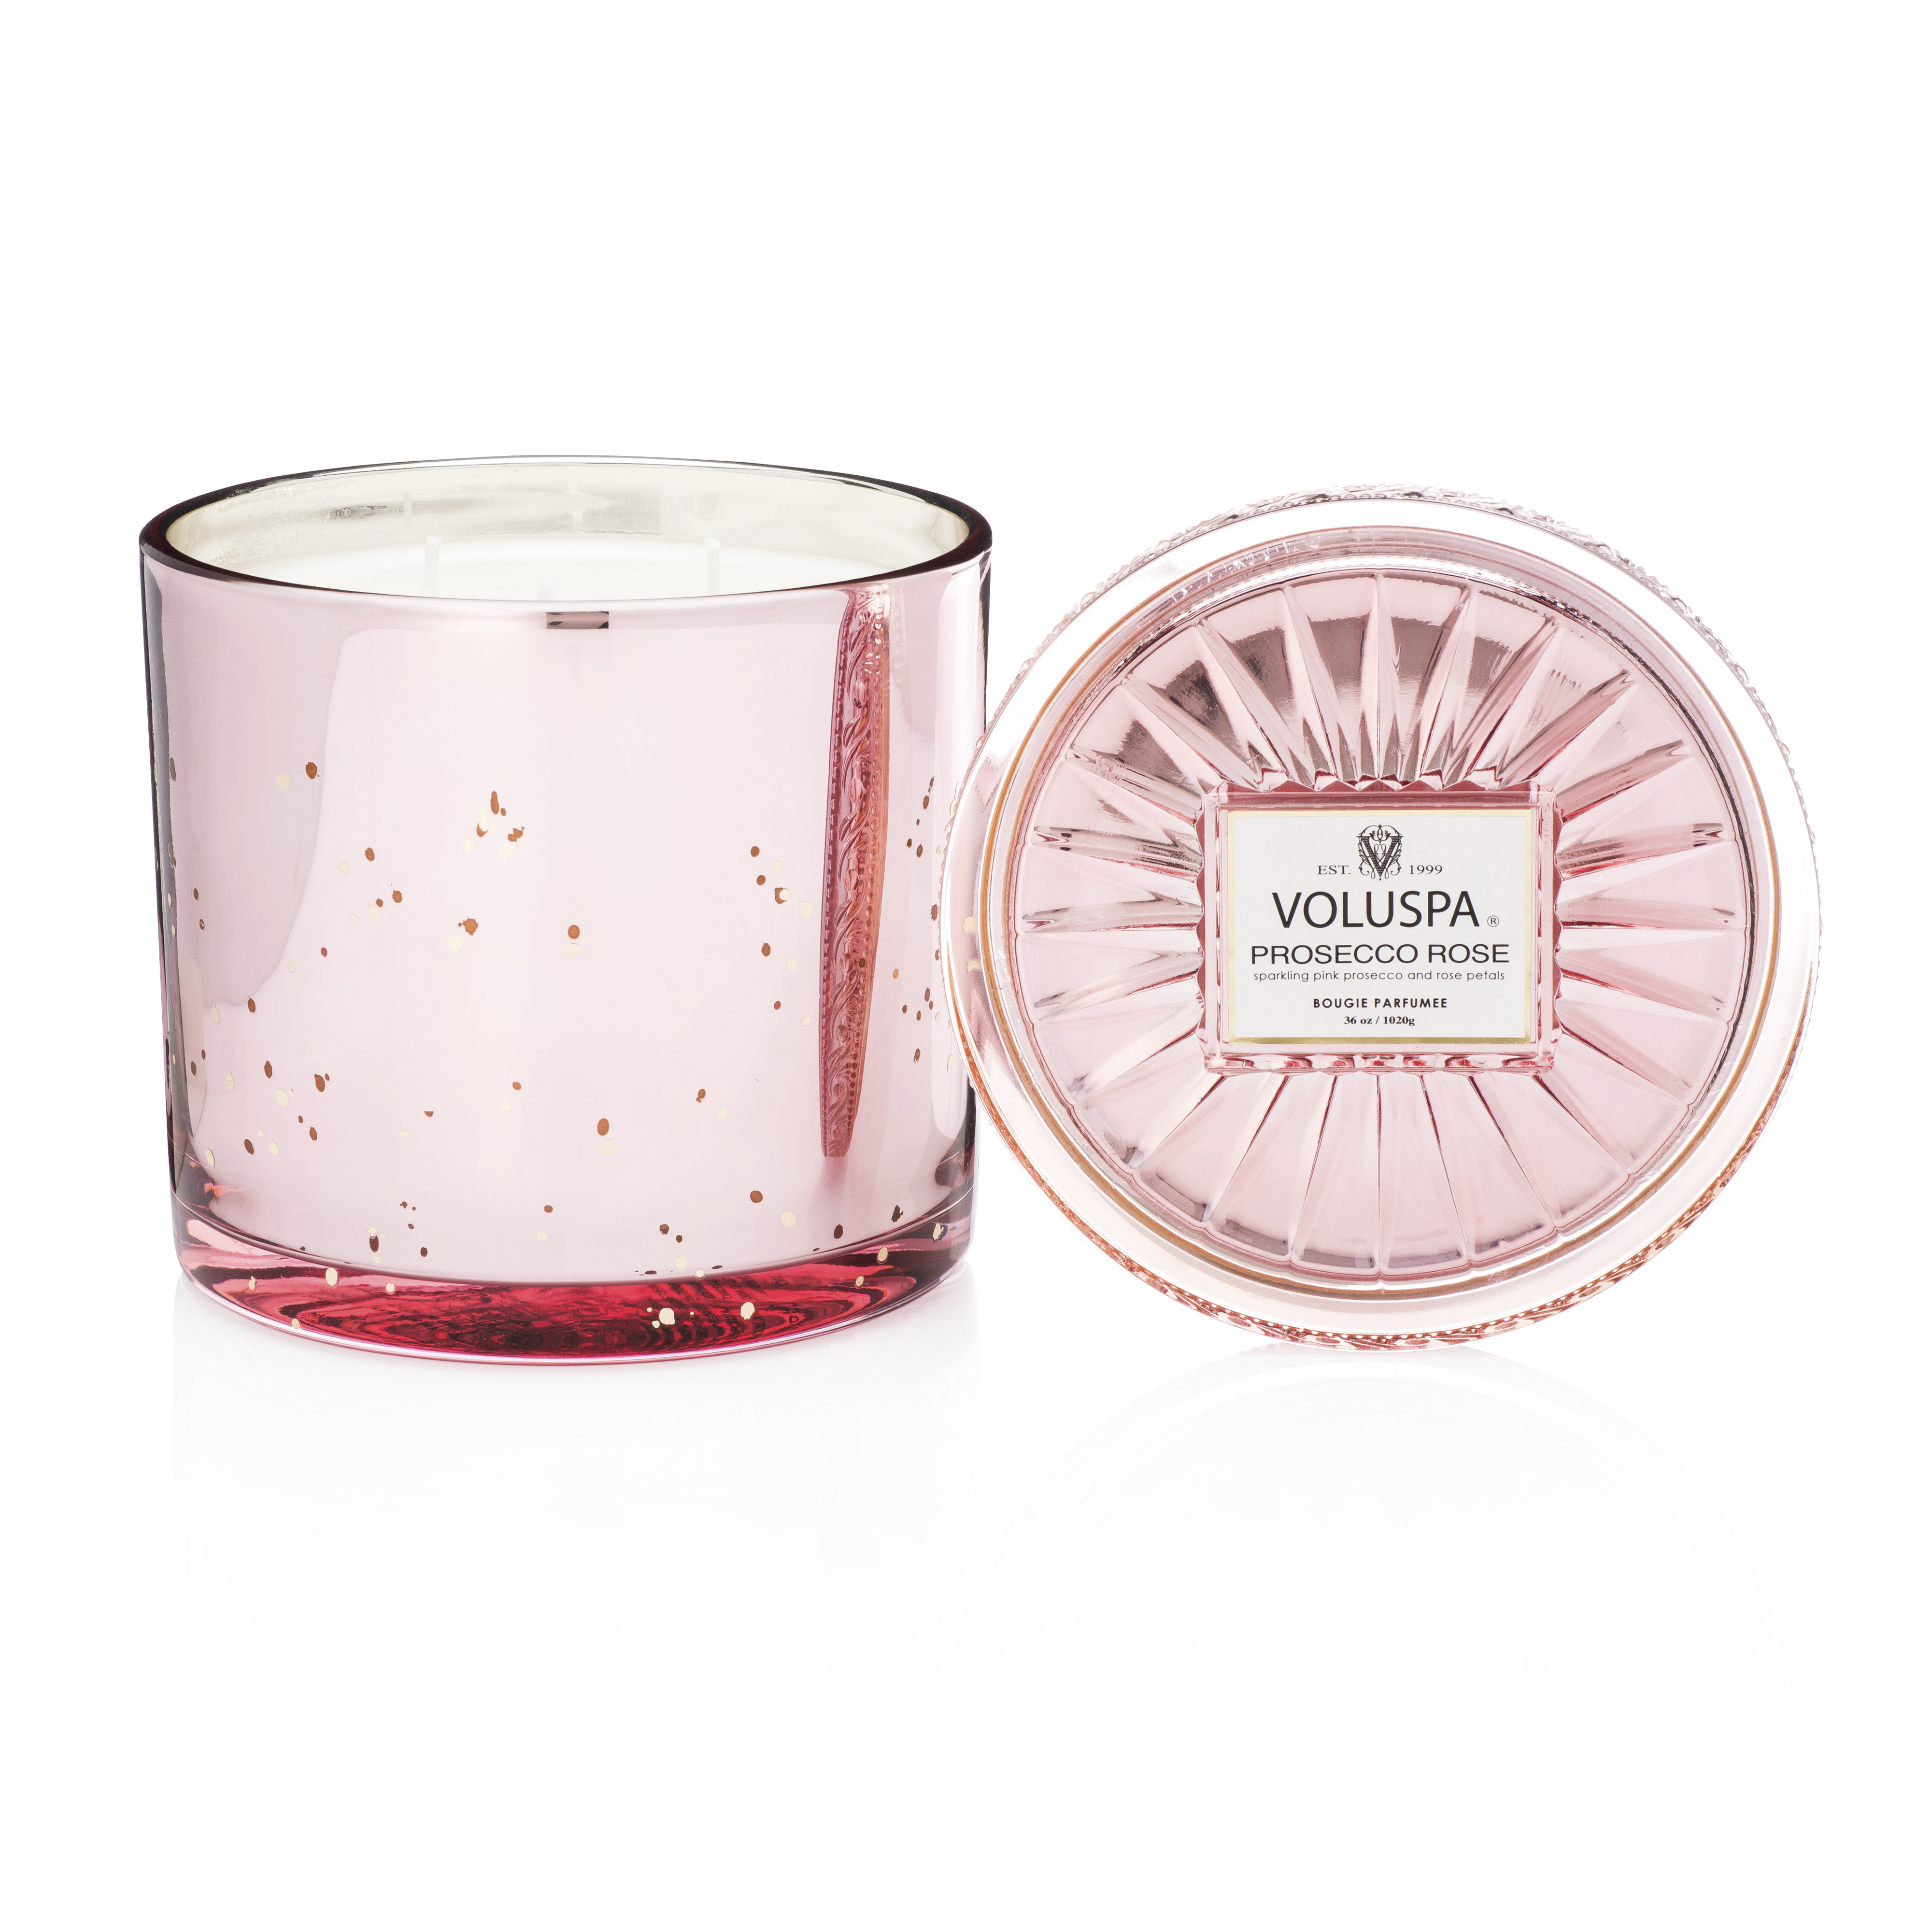 Prosecco Rose Grand Maison Scented Candle